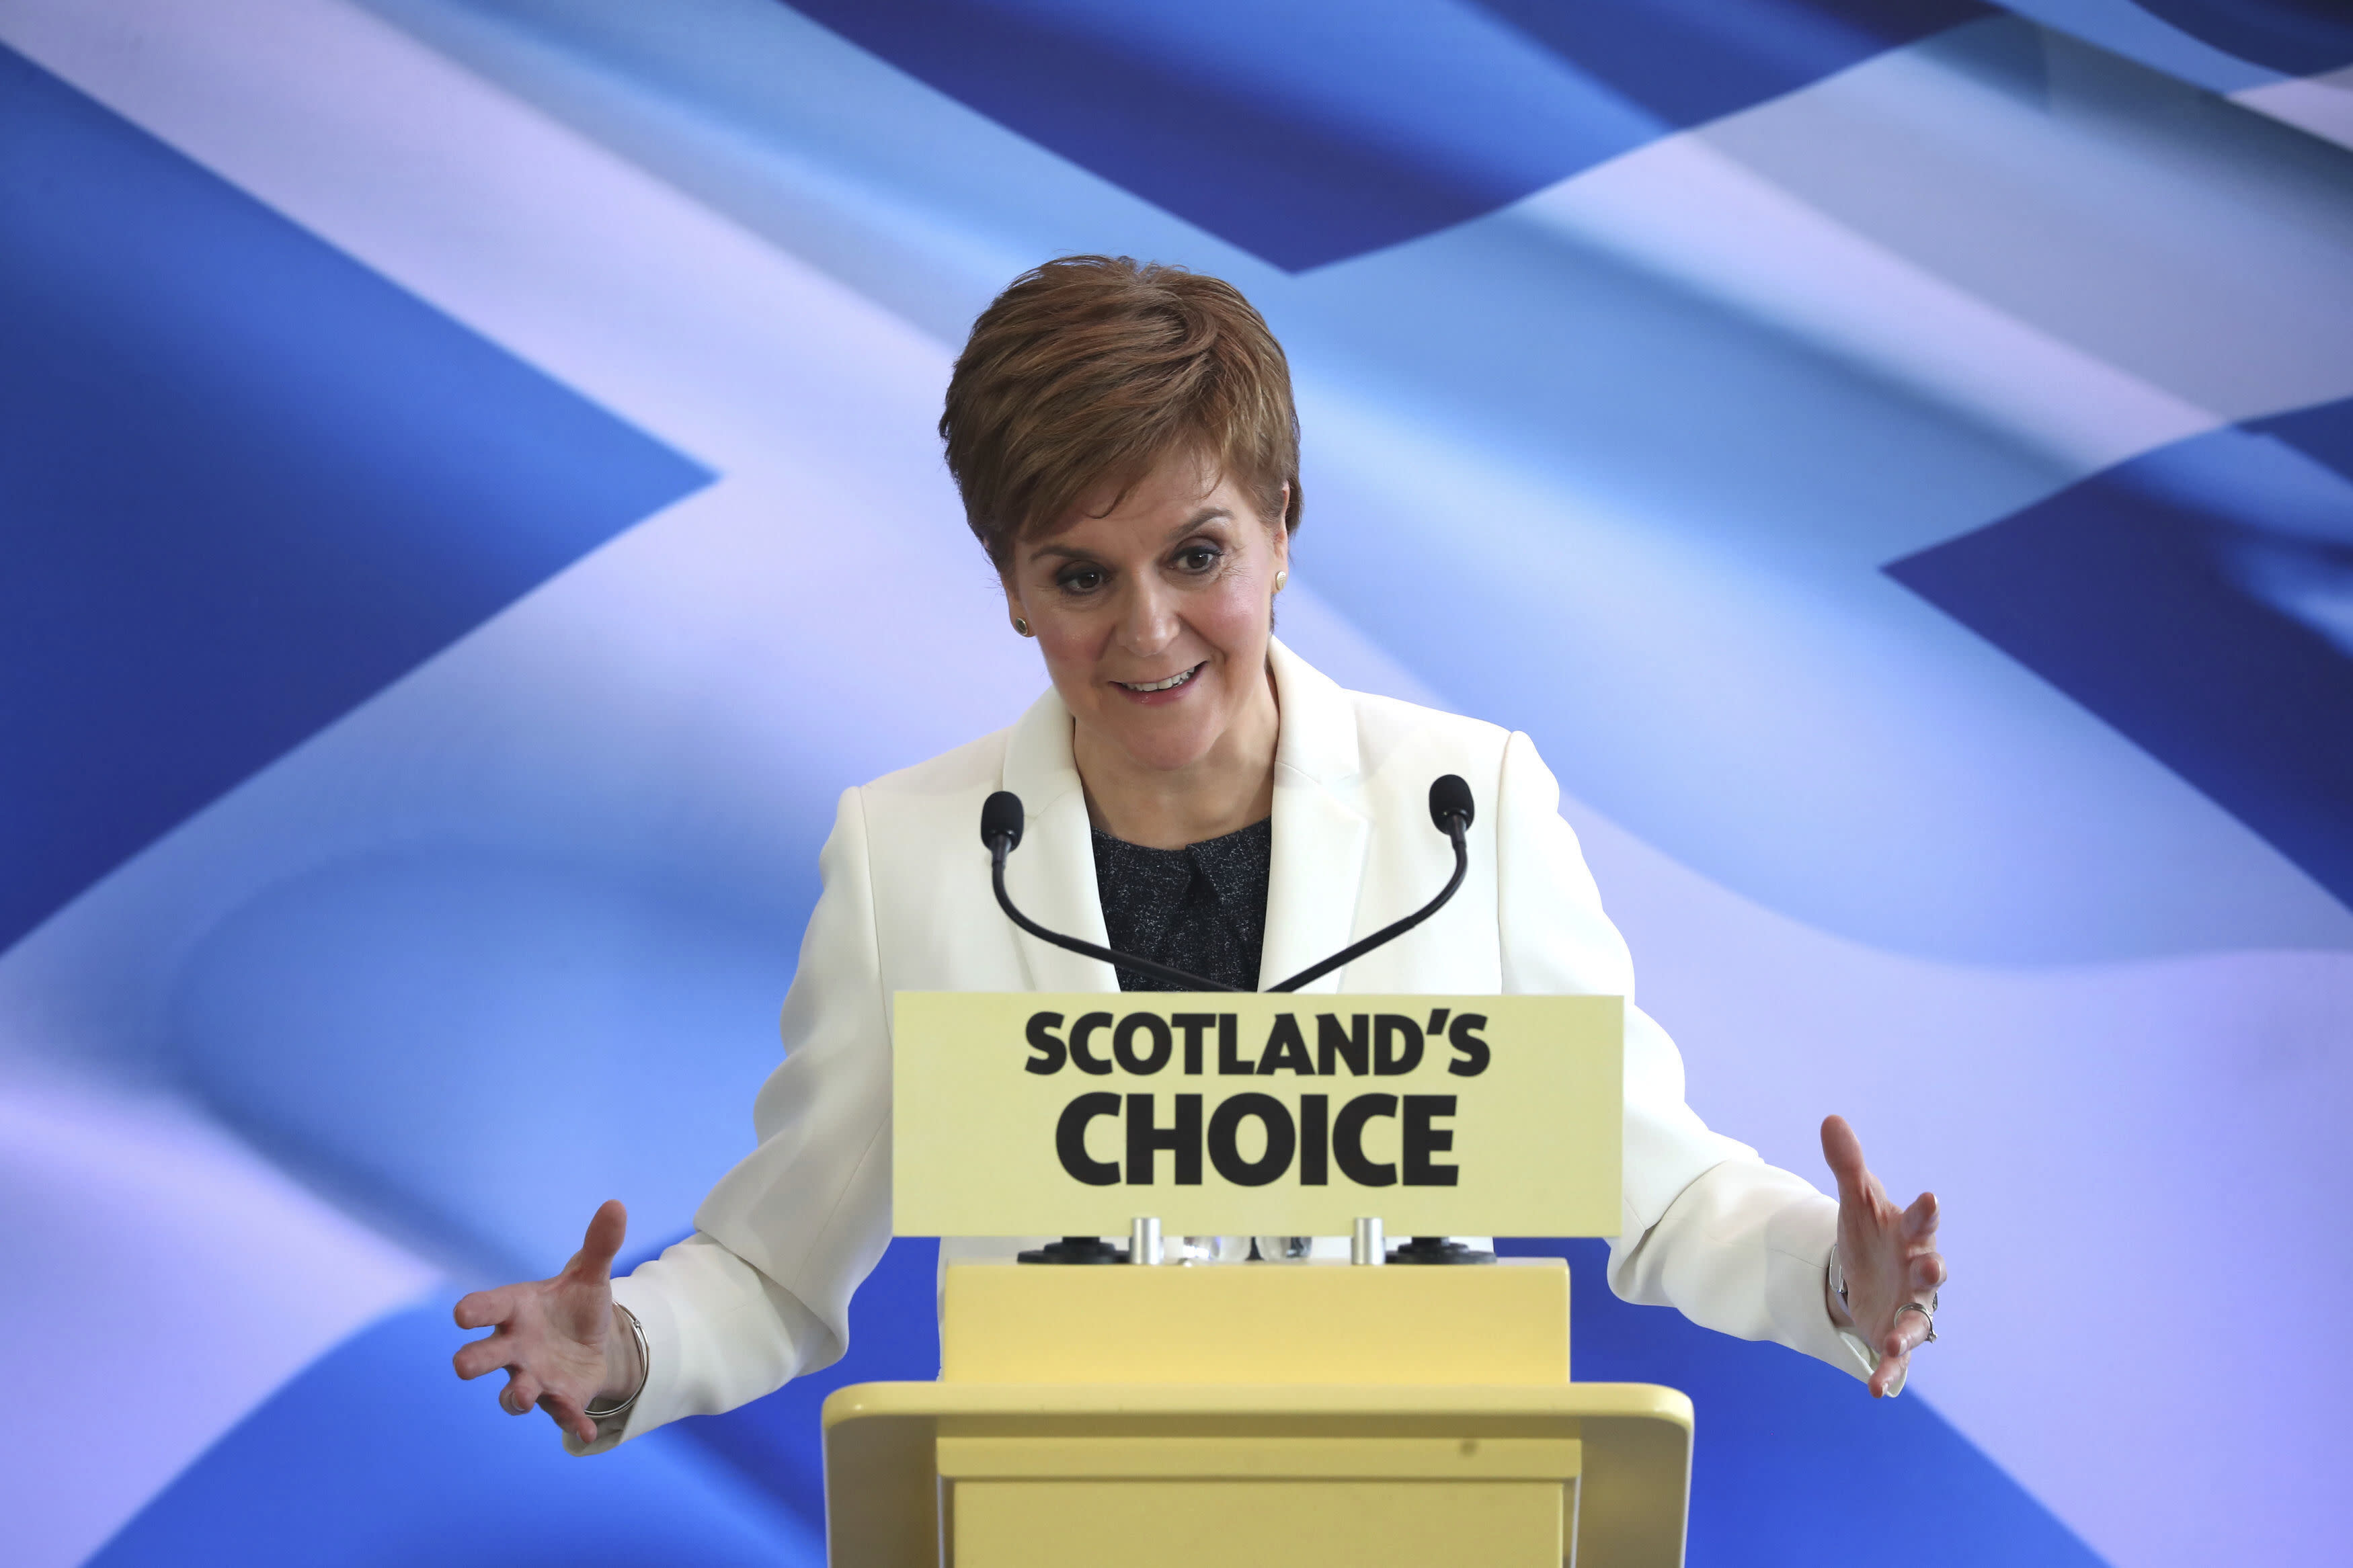 Support for Scottish independence from the UK leaps to record high